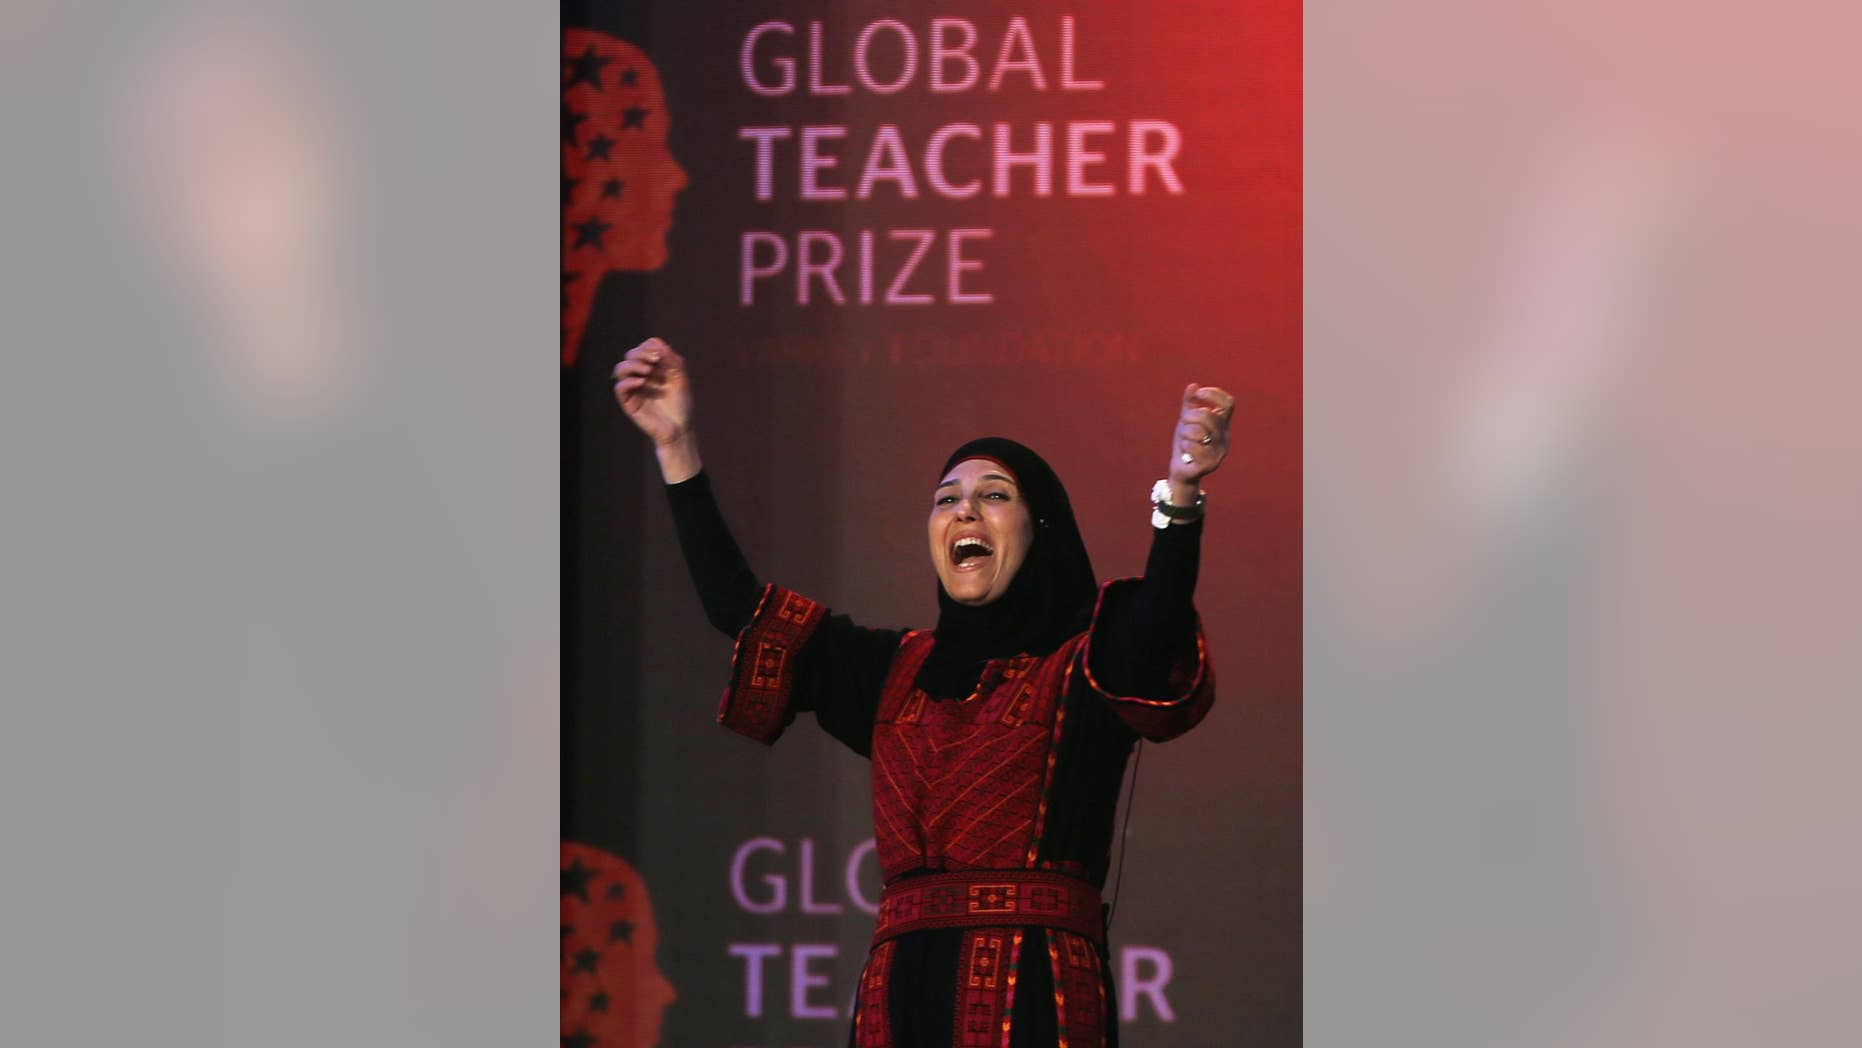 FILE - In this Sunday, March 13, 2016 file photo, Palestinian primary school teacher Hanan al-Hroub reacts after she won the second annual Global Teacher Prize, in Dubai, United Arab Emirates. The U.K.-based foundation that awarded a al-Hroub a $1 million prize for preaching nonviolence is sticking by its choice following revelations that the woman's husband participated in an attack that killed six Israelis three decades ago. (AP Photo/Kamran Jebreili, File)